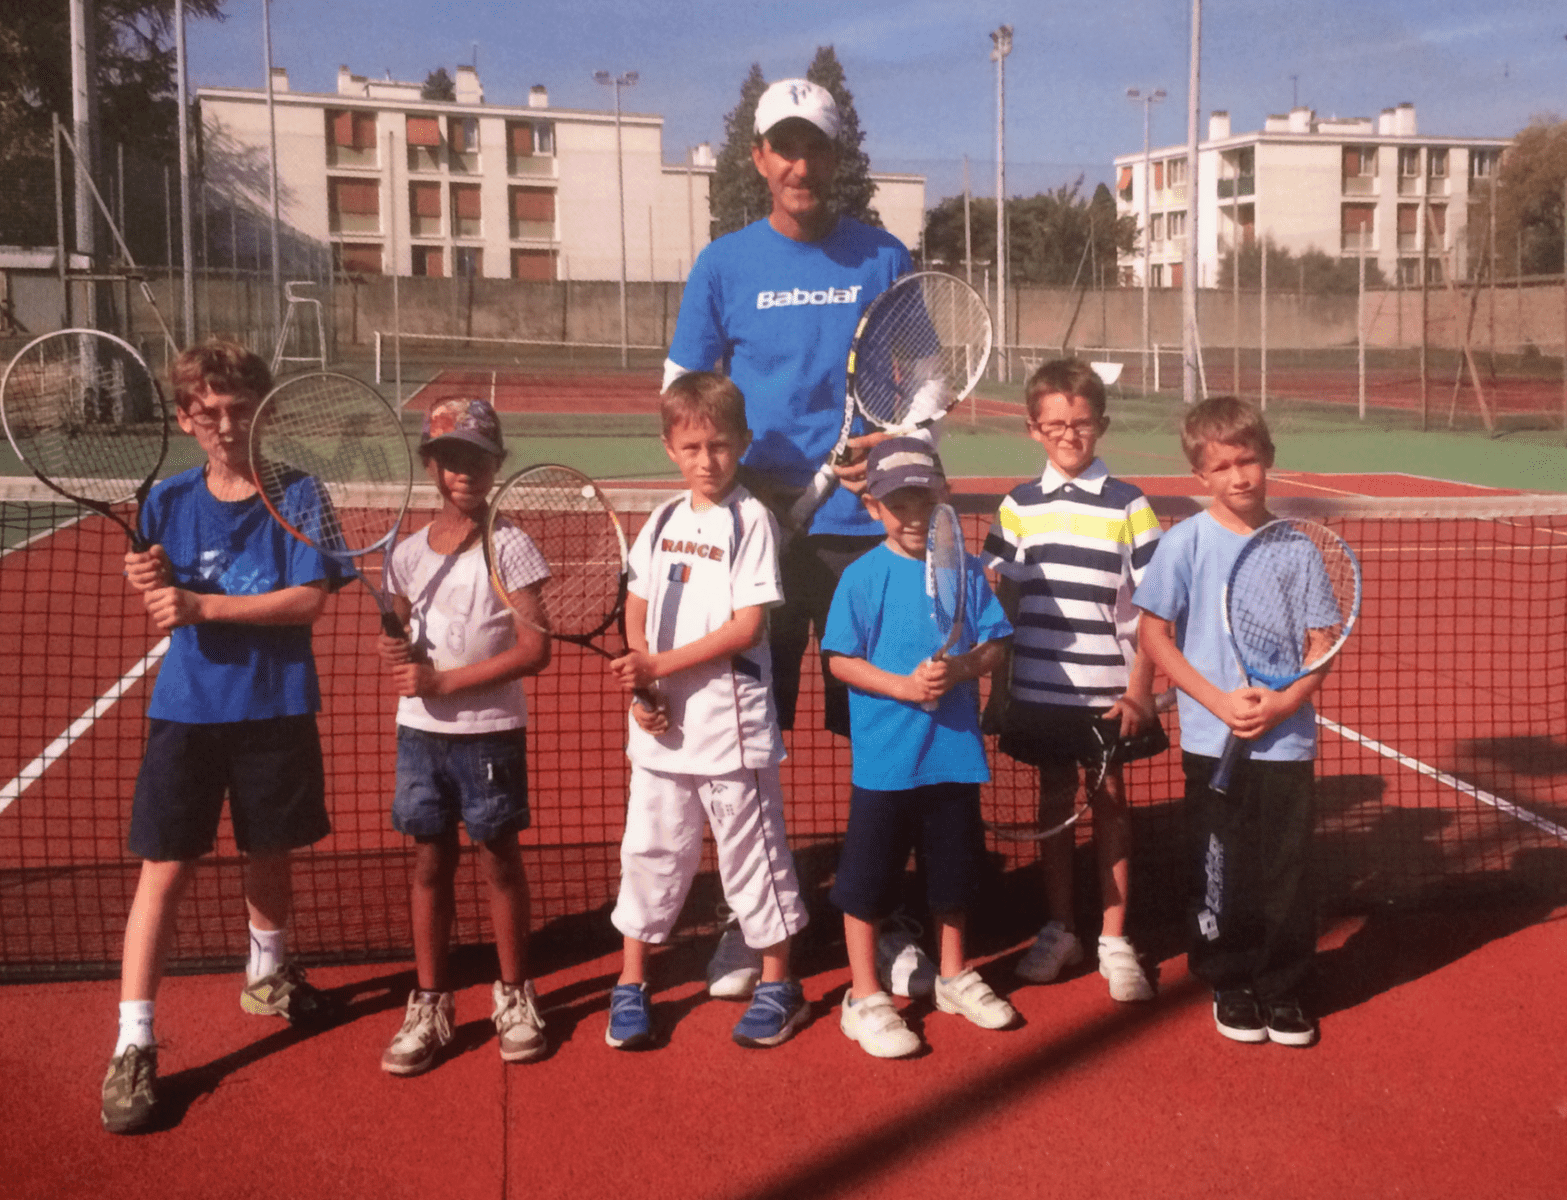 Ecole de tennis 2014 - Tennis Club de Pierre Bénite